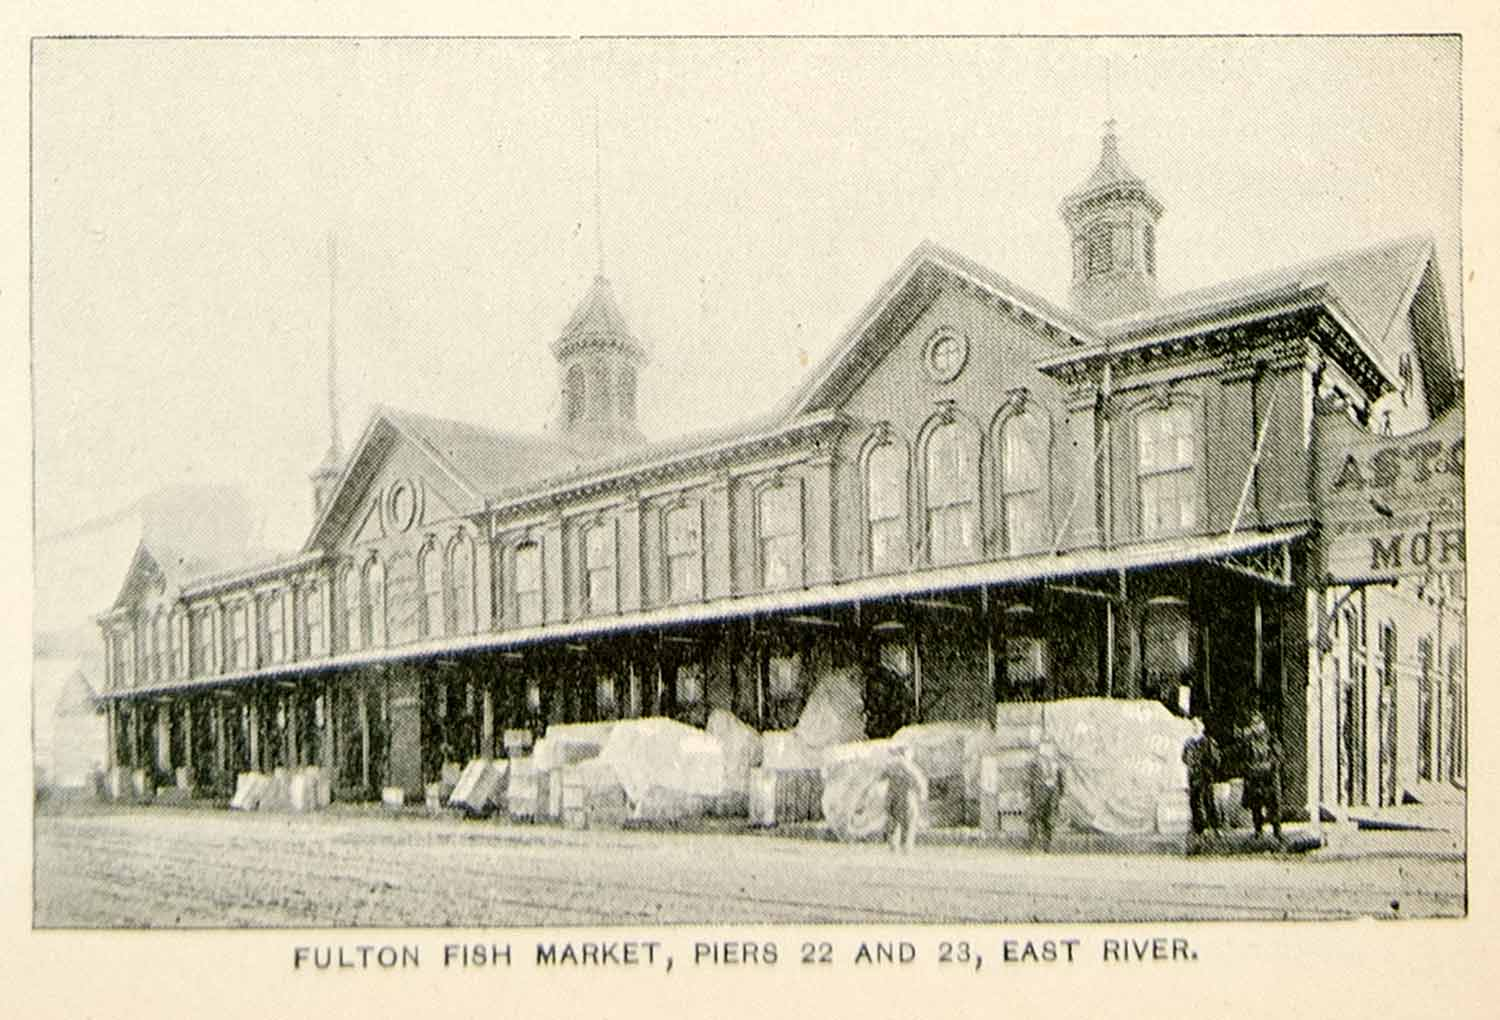 1893 Print Fulton Fish Market Pier 22 23 East River New York City Historic NY2A